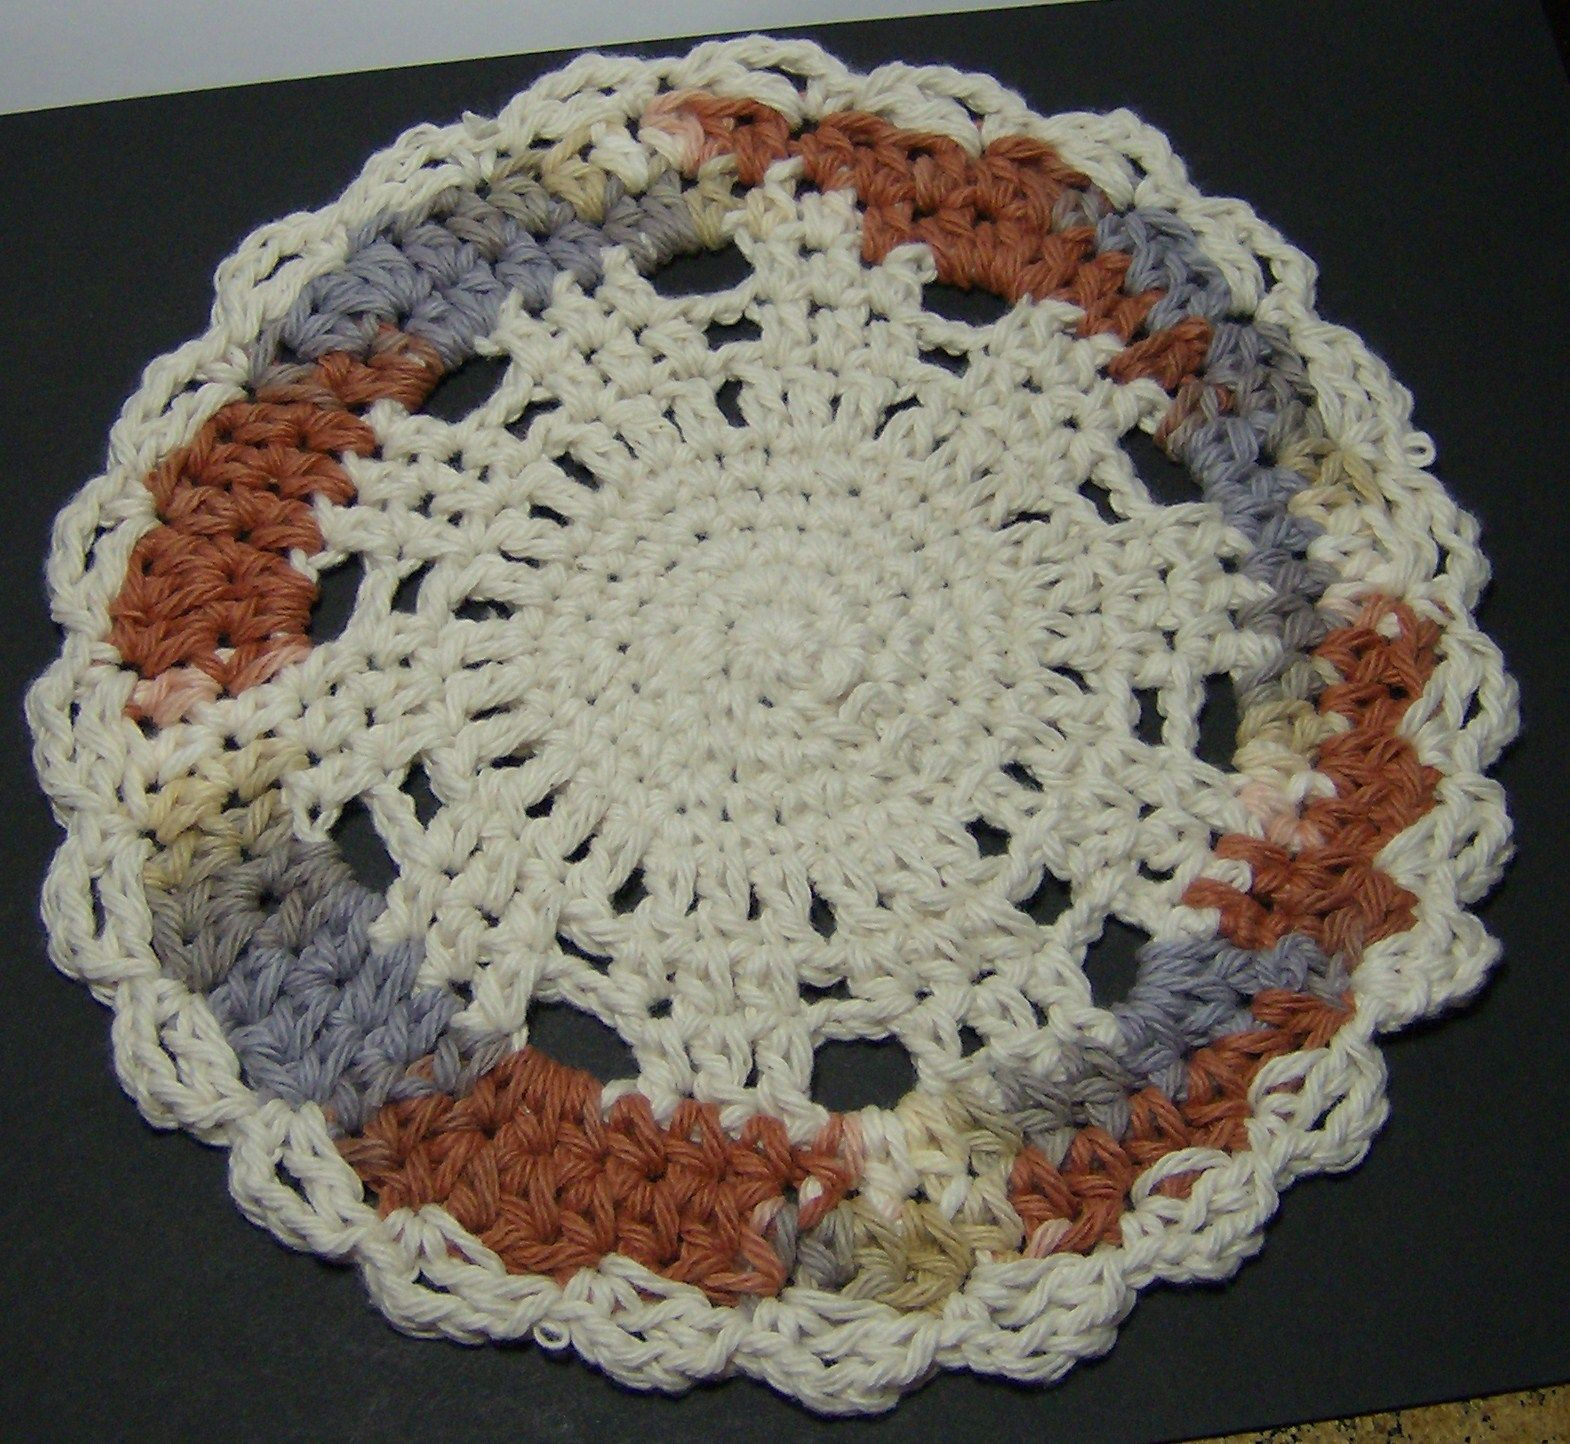 Crochet cotton dishcloth no pattern kitchen crochet crochet cotton dishcloth no pattern bankloansurffo Image collections